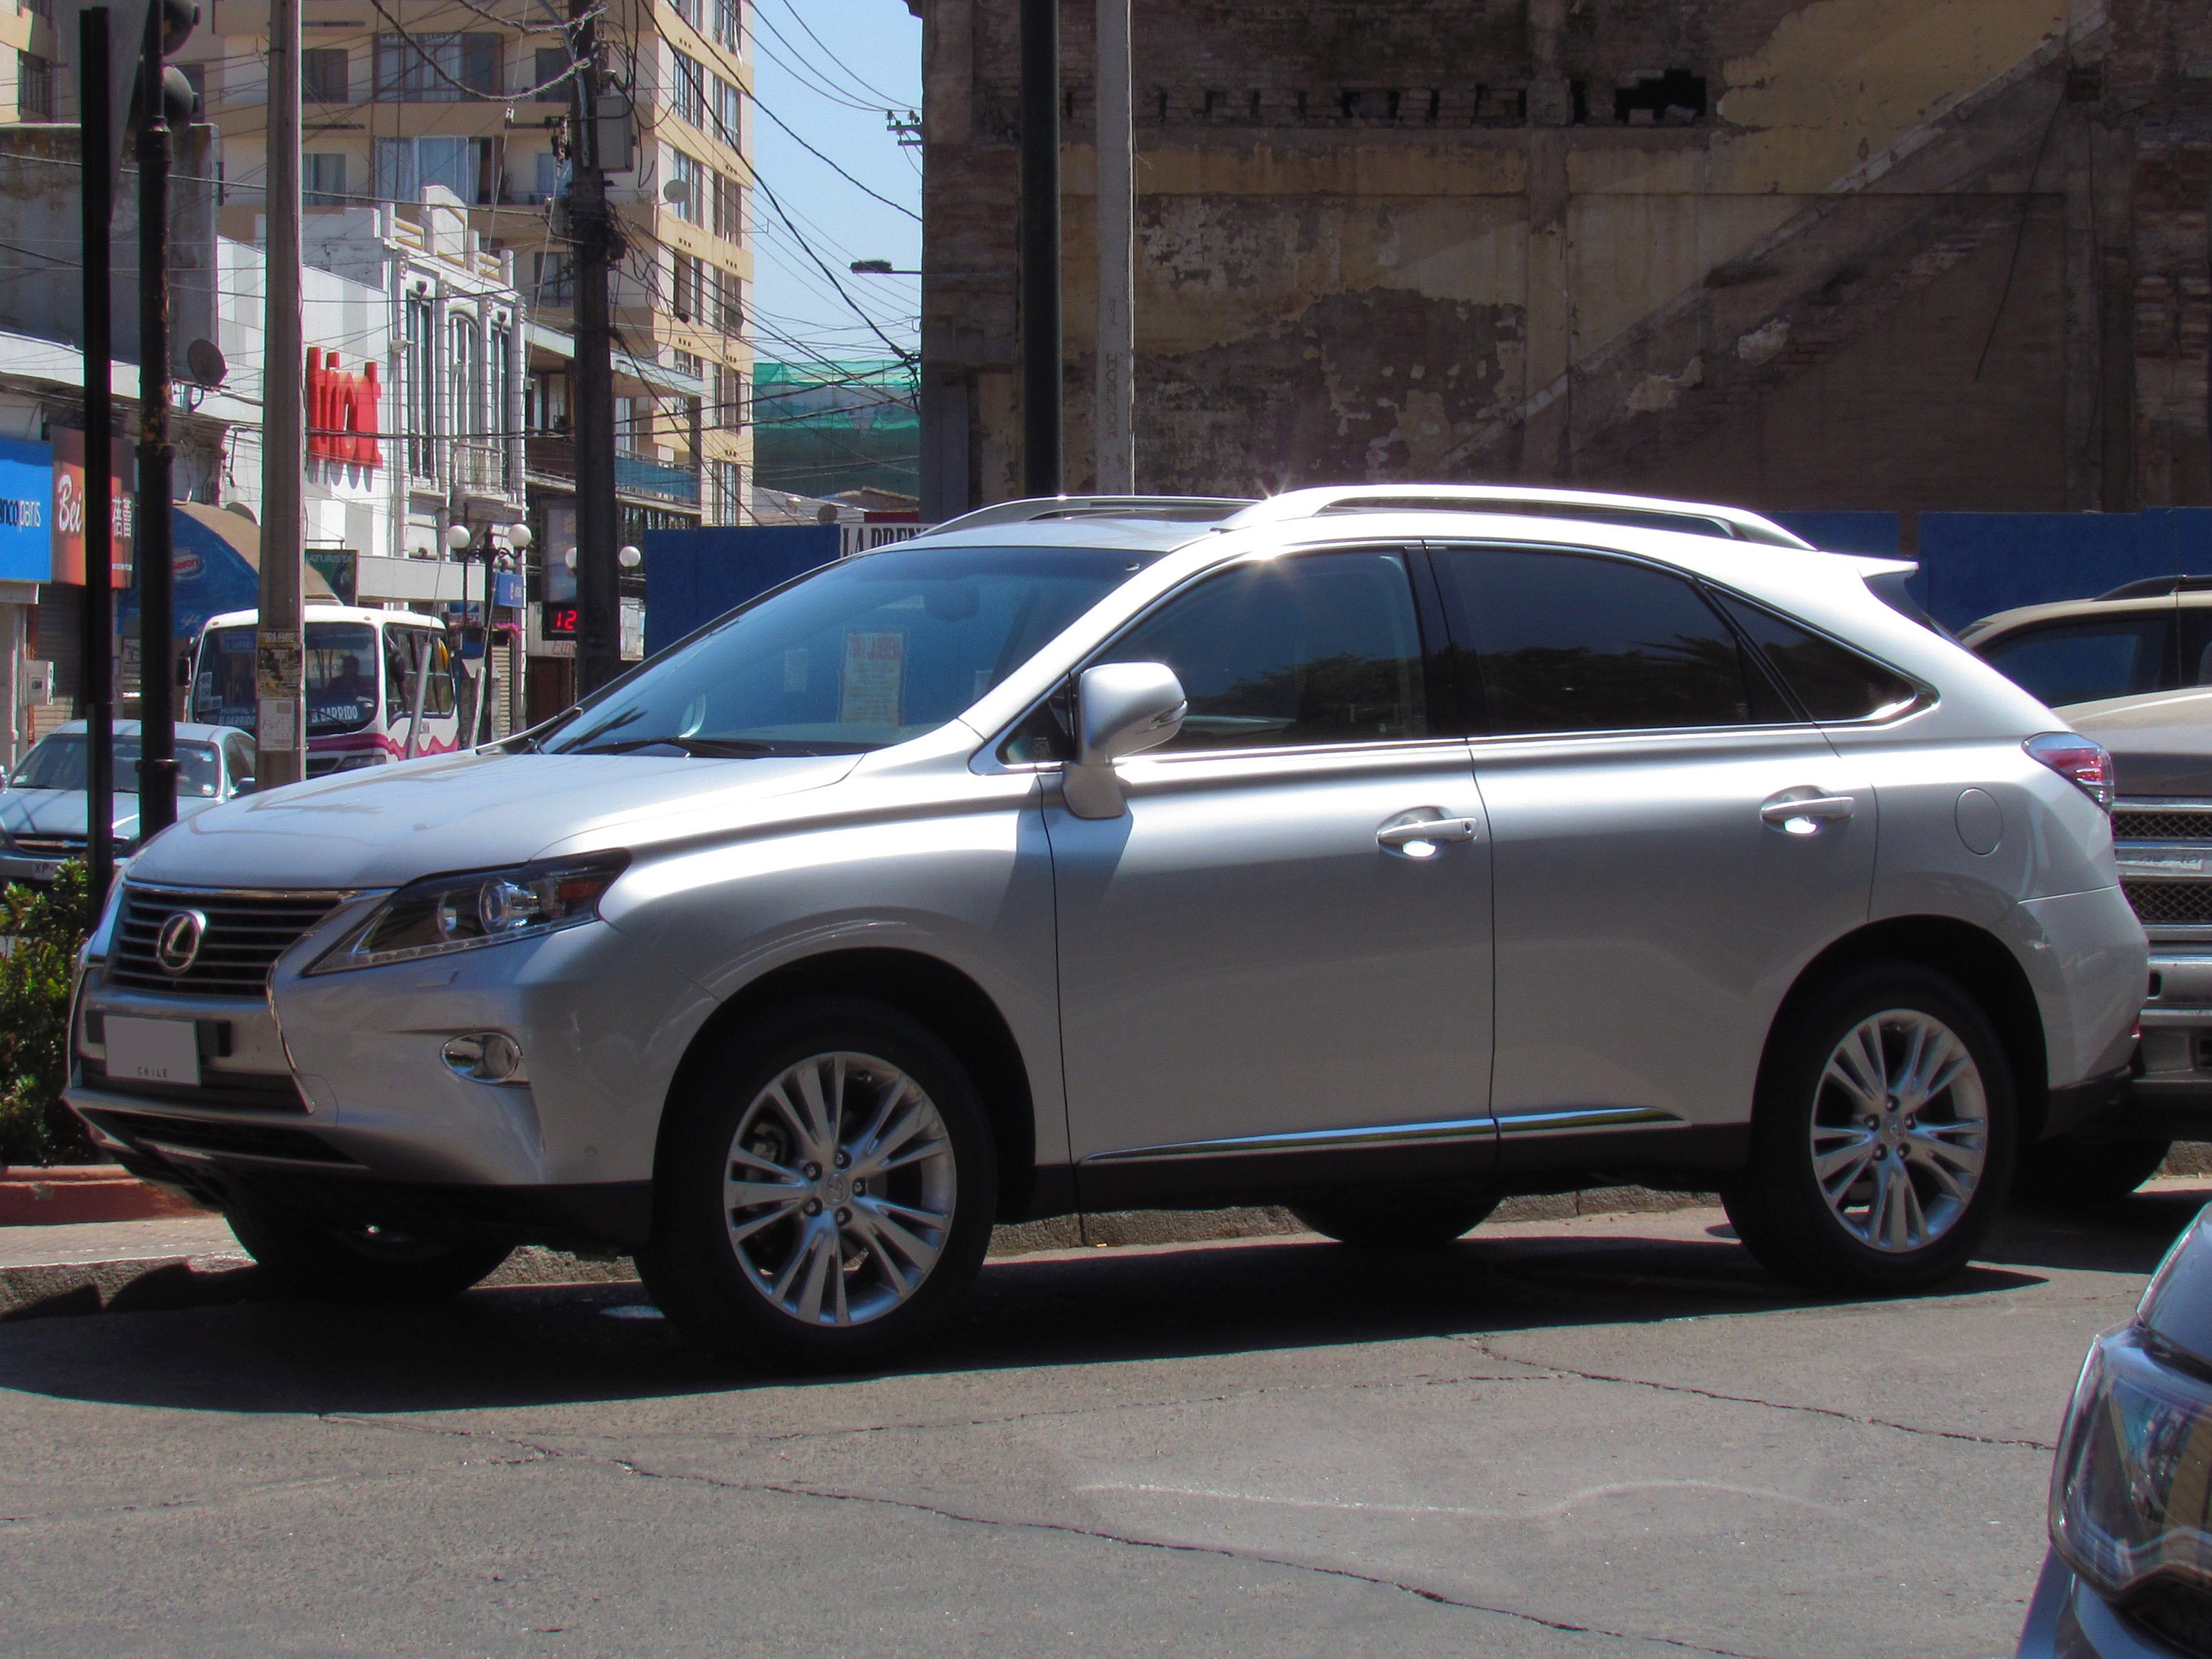 story money lexus power reliability most ranked to suv j buick reliable vds jd d up